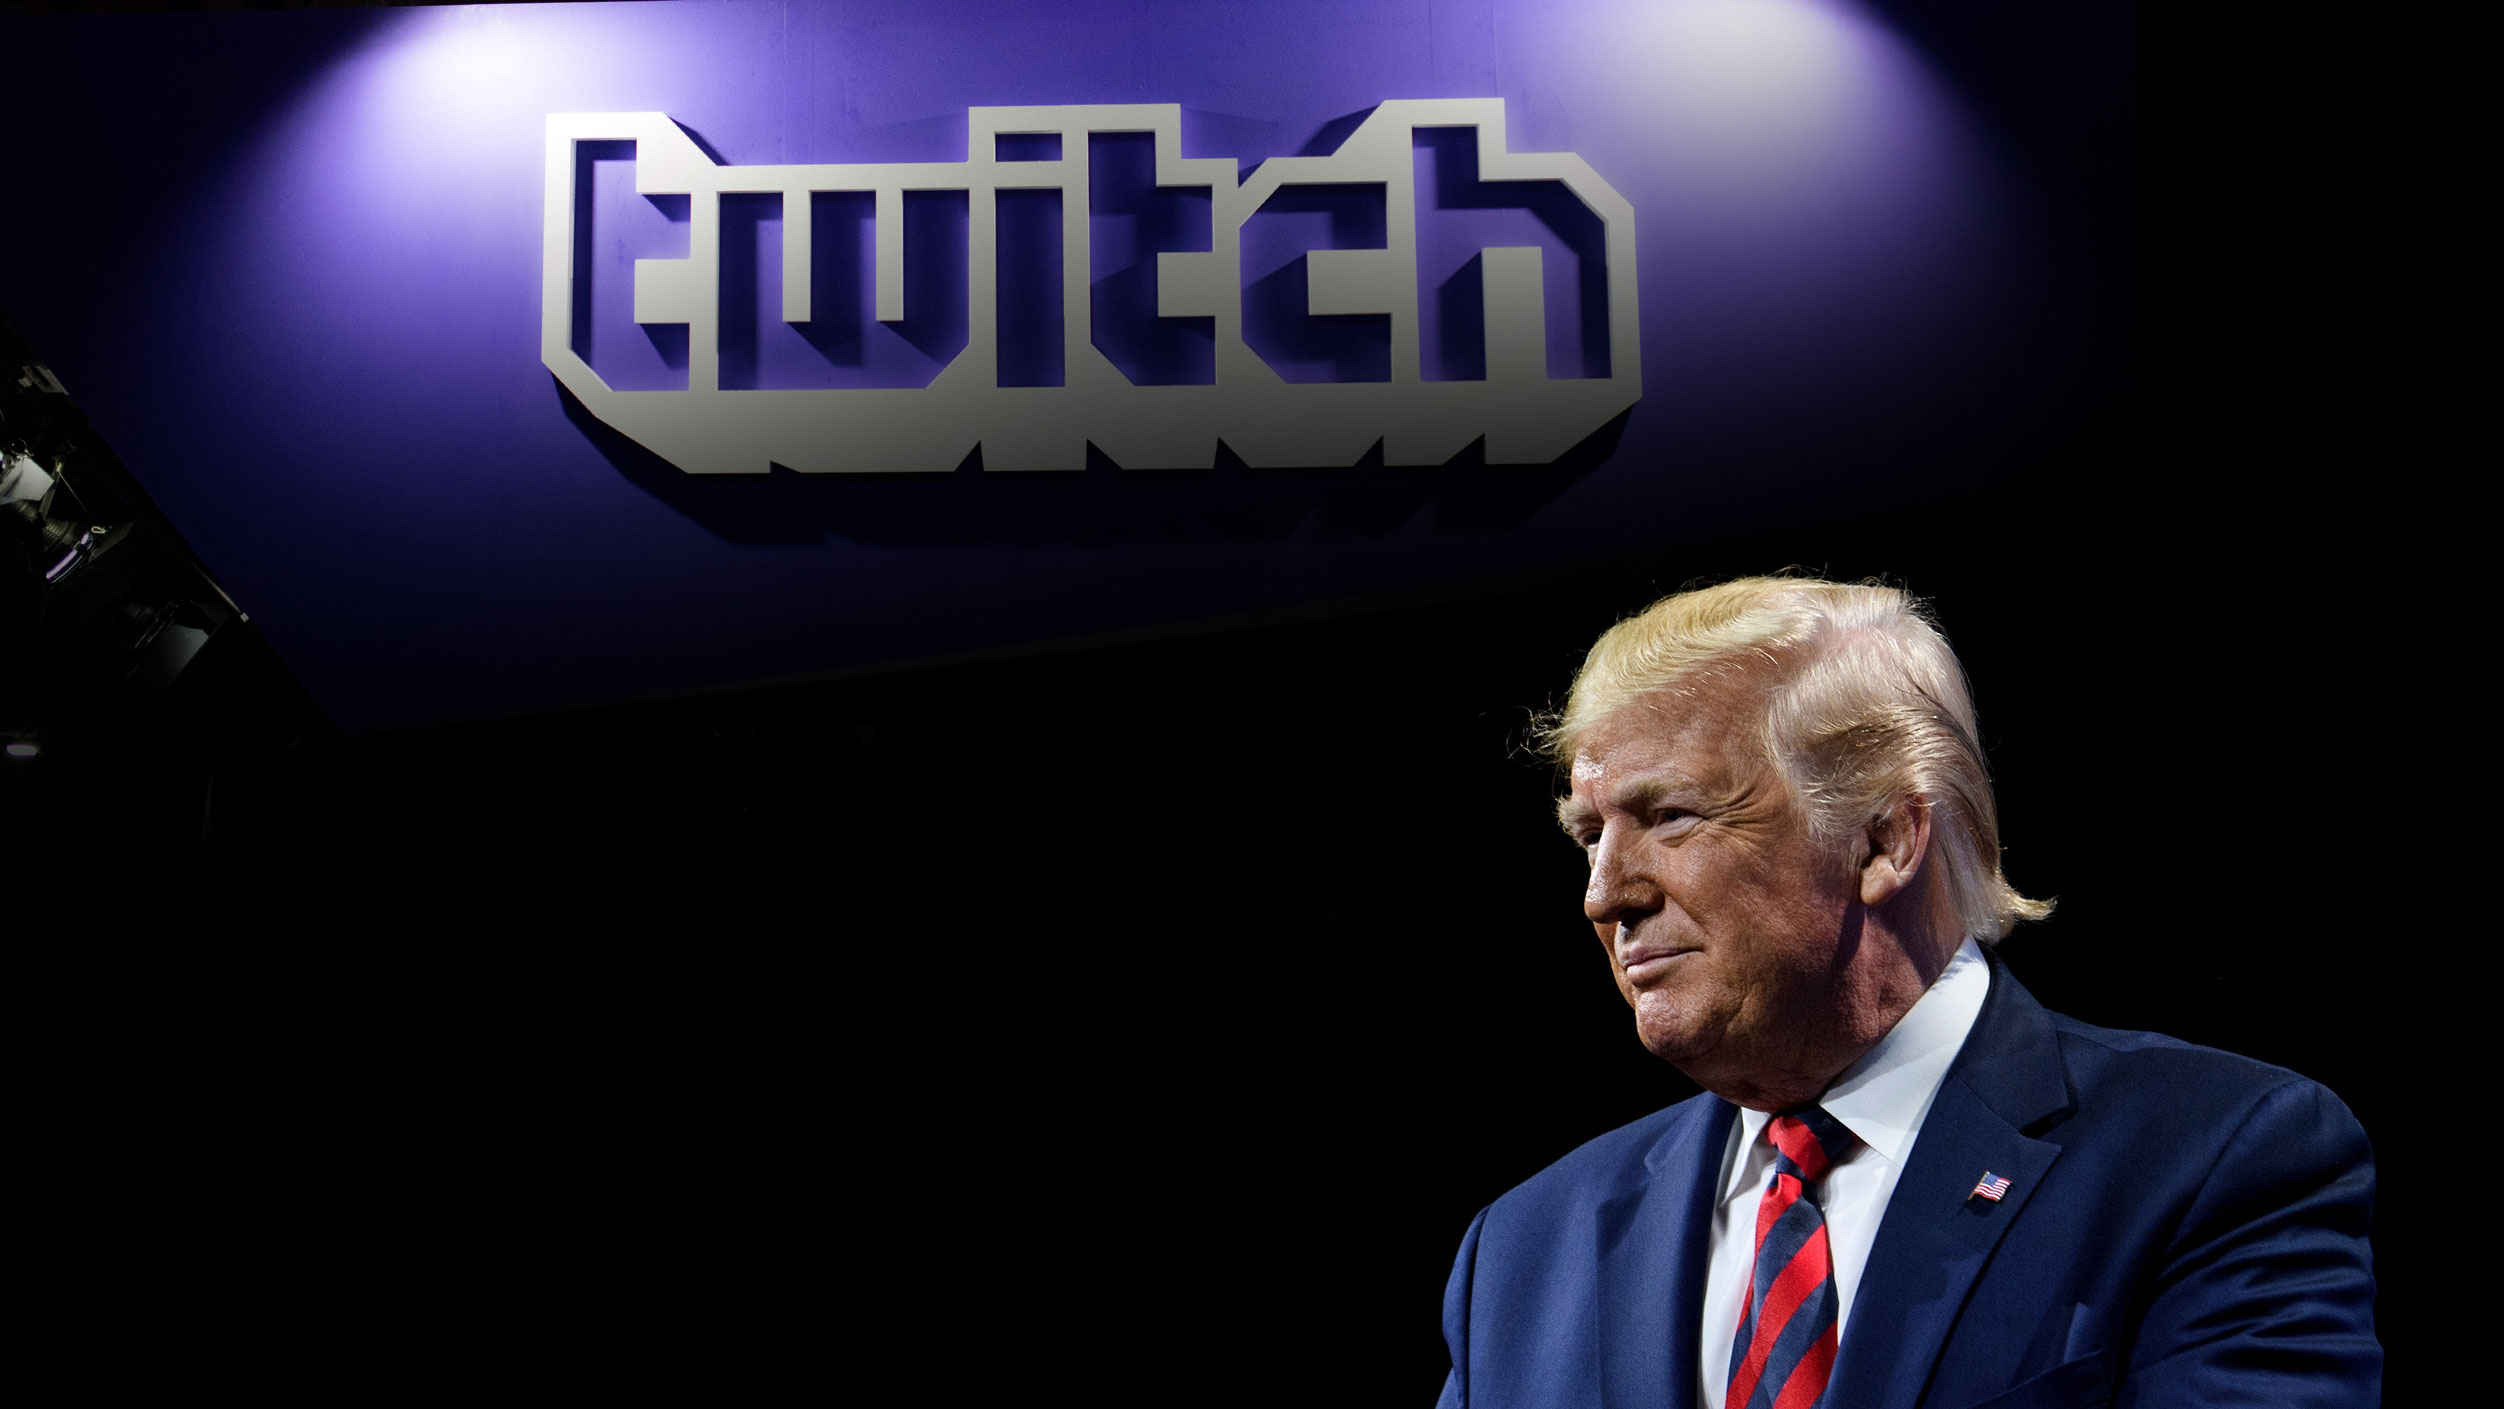 Twitch Disables Donald Trump's Channel Over Risk of More Violence